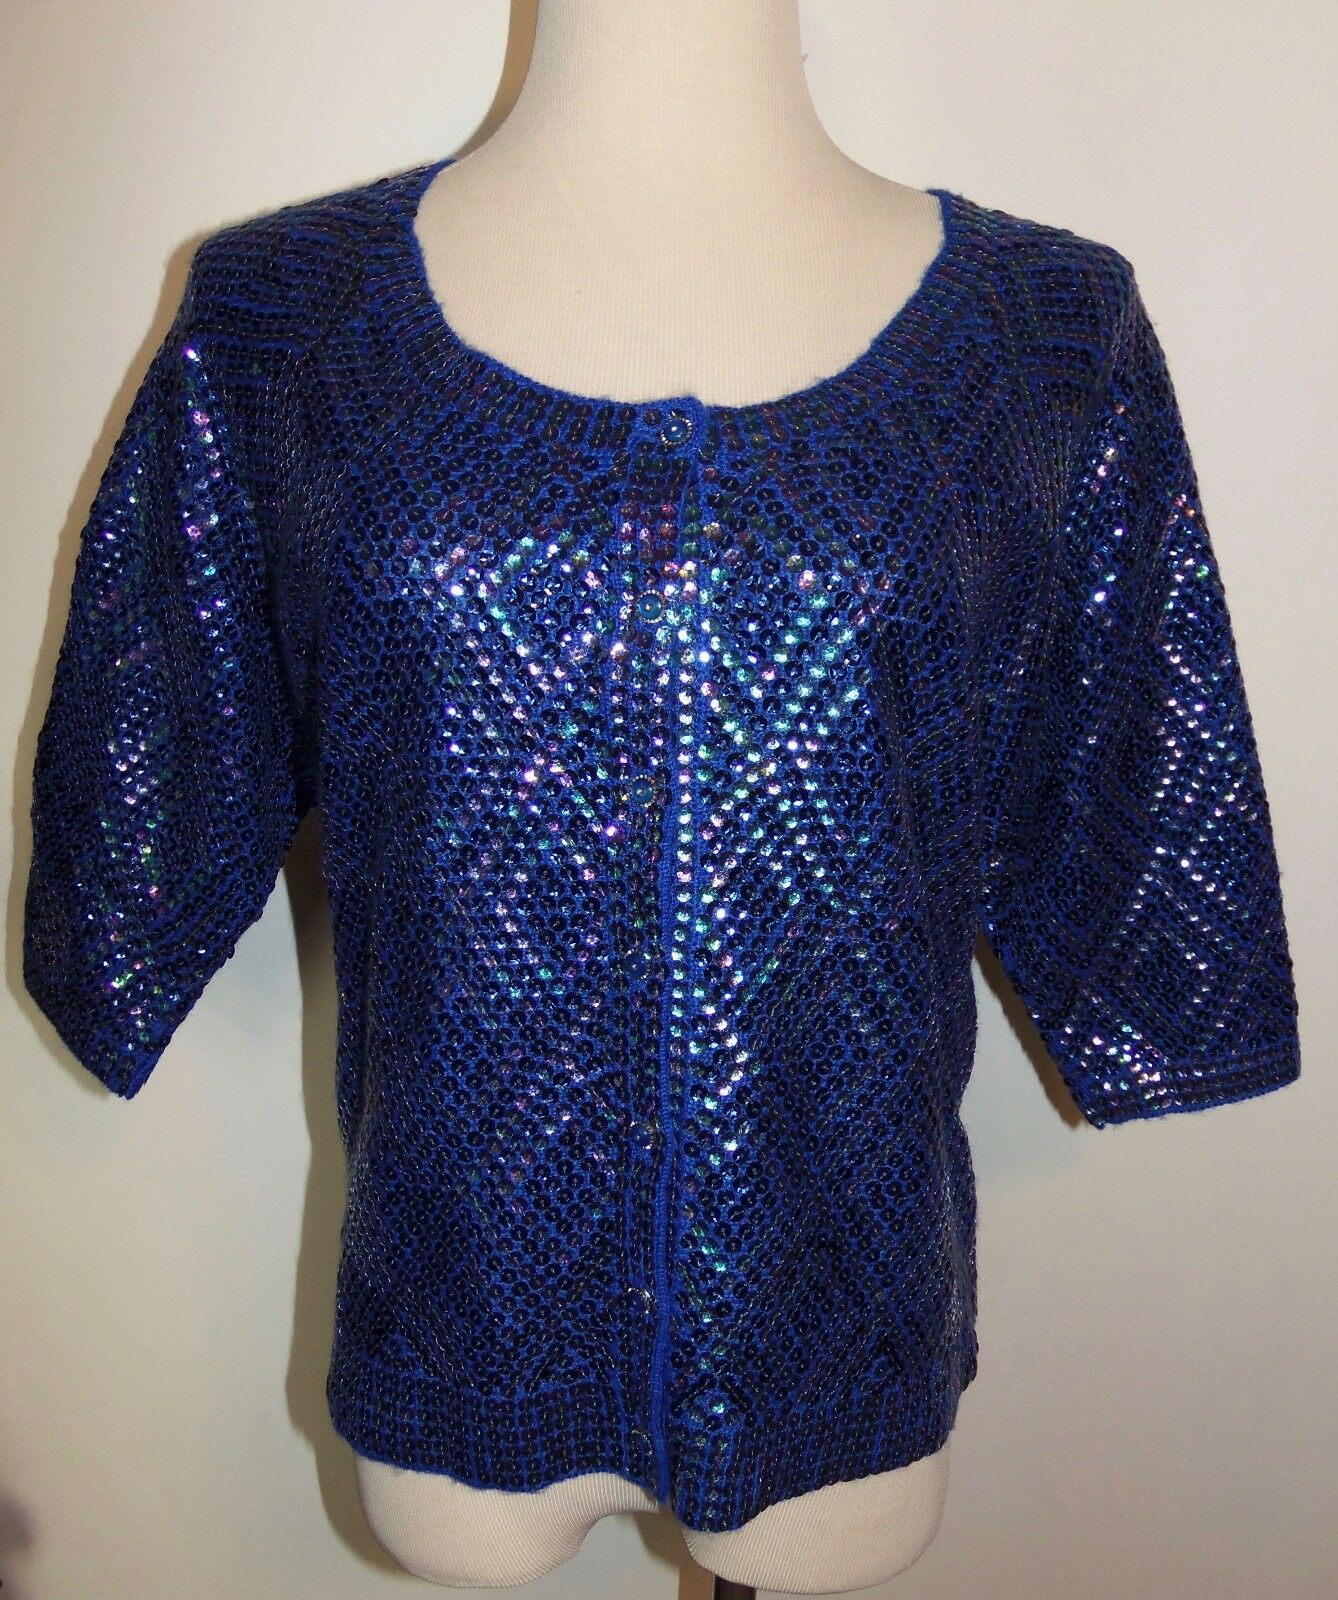 New Free People Sweater Small Wool Button Cardigan Irridescent bluee Sequin Top